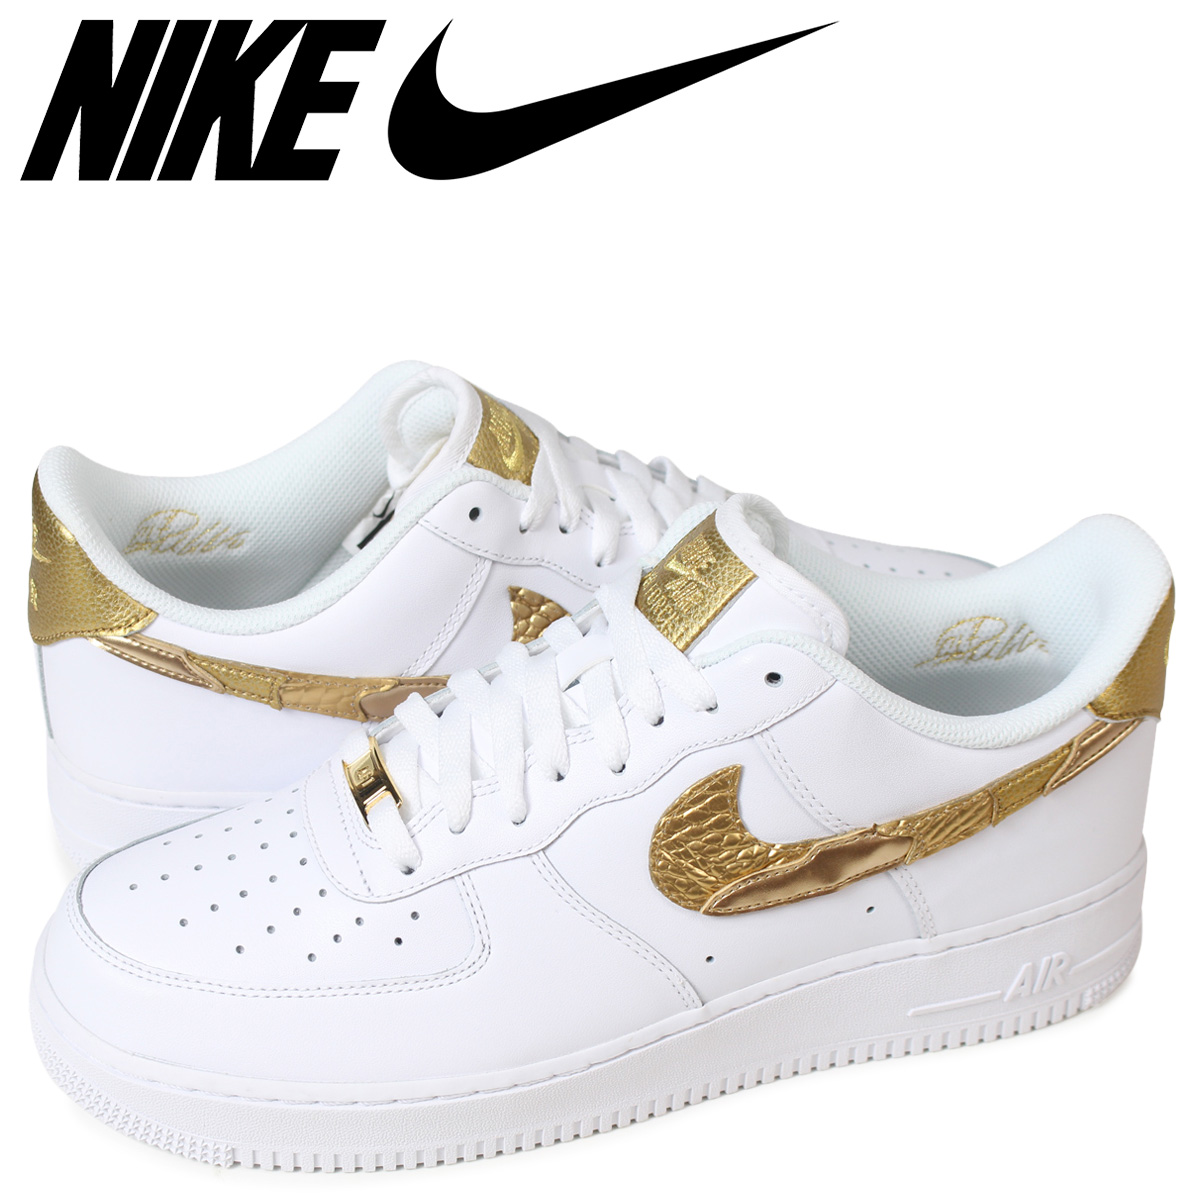 énorme réduction c9421 2ca71 NIKE AIR FORCE 1 CR7 GOLDEN PATCHWORK Nike air force 1 07 sneakers men  AQ0666-100 white [185]